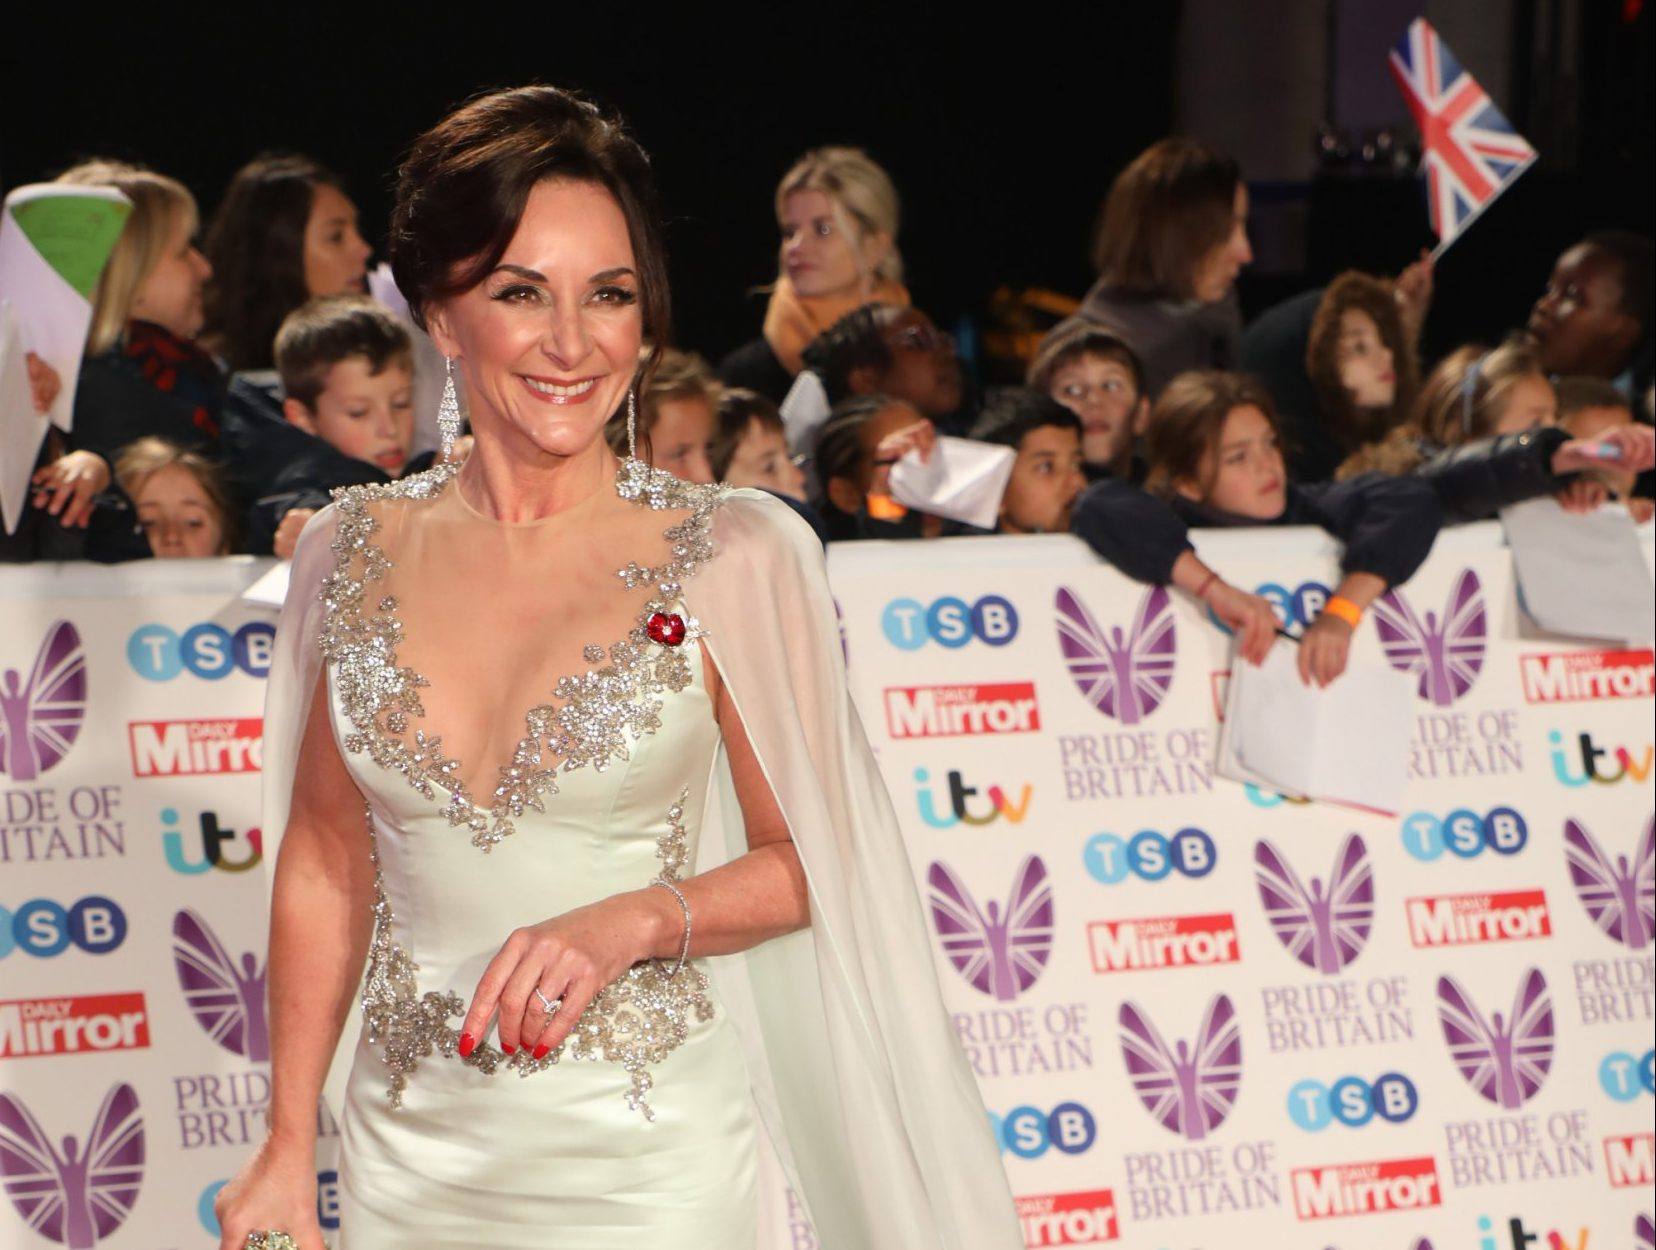 THe Pride of Britain Awards 2018 held at Grosvenor House - Arrivals Featuring: Shirley Ballas Where: London, United Kingdom When: 29 Oct 2018 Credit: Lia Toby/WENN.com